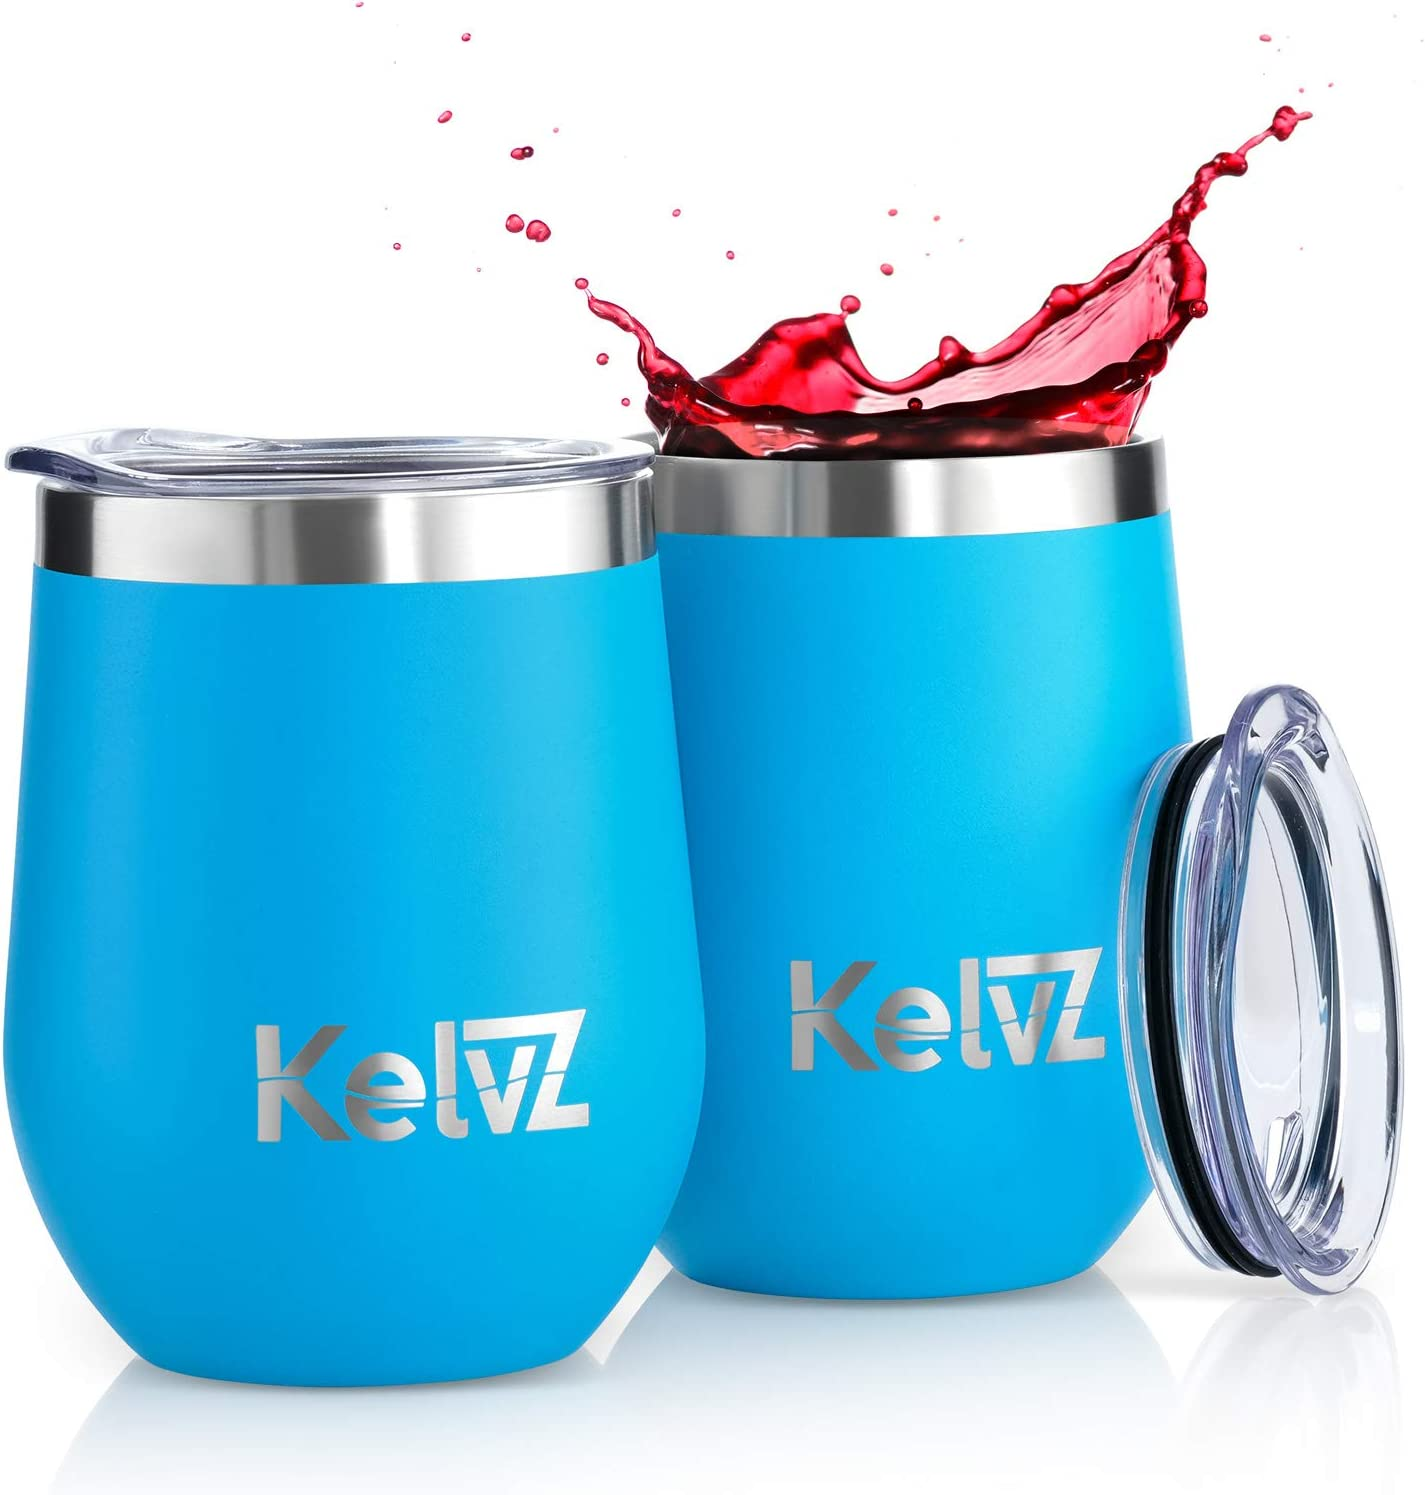 KelvZ 2 Pack Insulated Wine Tumbler with Lid | 12 oz Stemless Wine Glasses | 18/8 Stainless Steel Tumbler for Wine and Hot Drinks | Double Wall Vacuum Insulated Tumbler Wine Glass Set (Caribbean Sea)